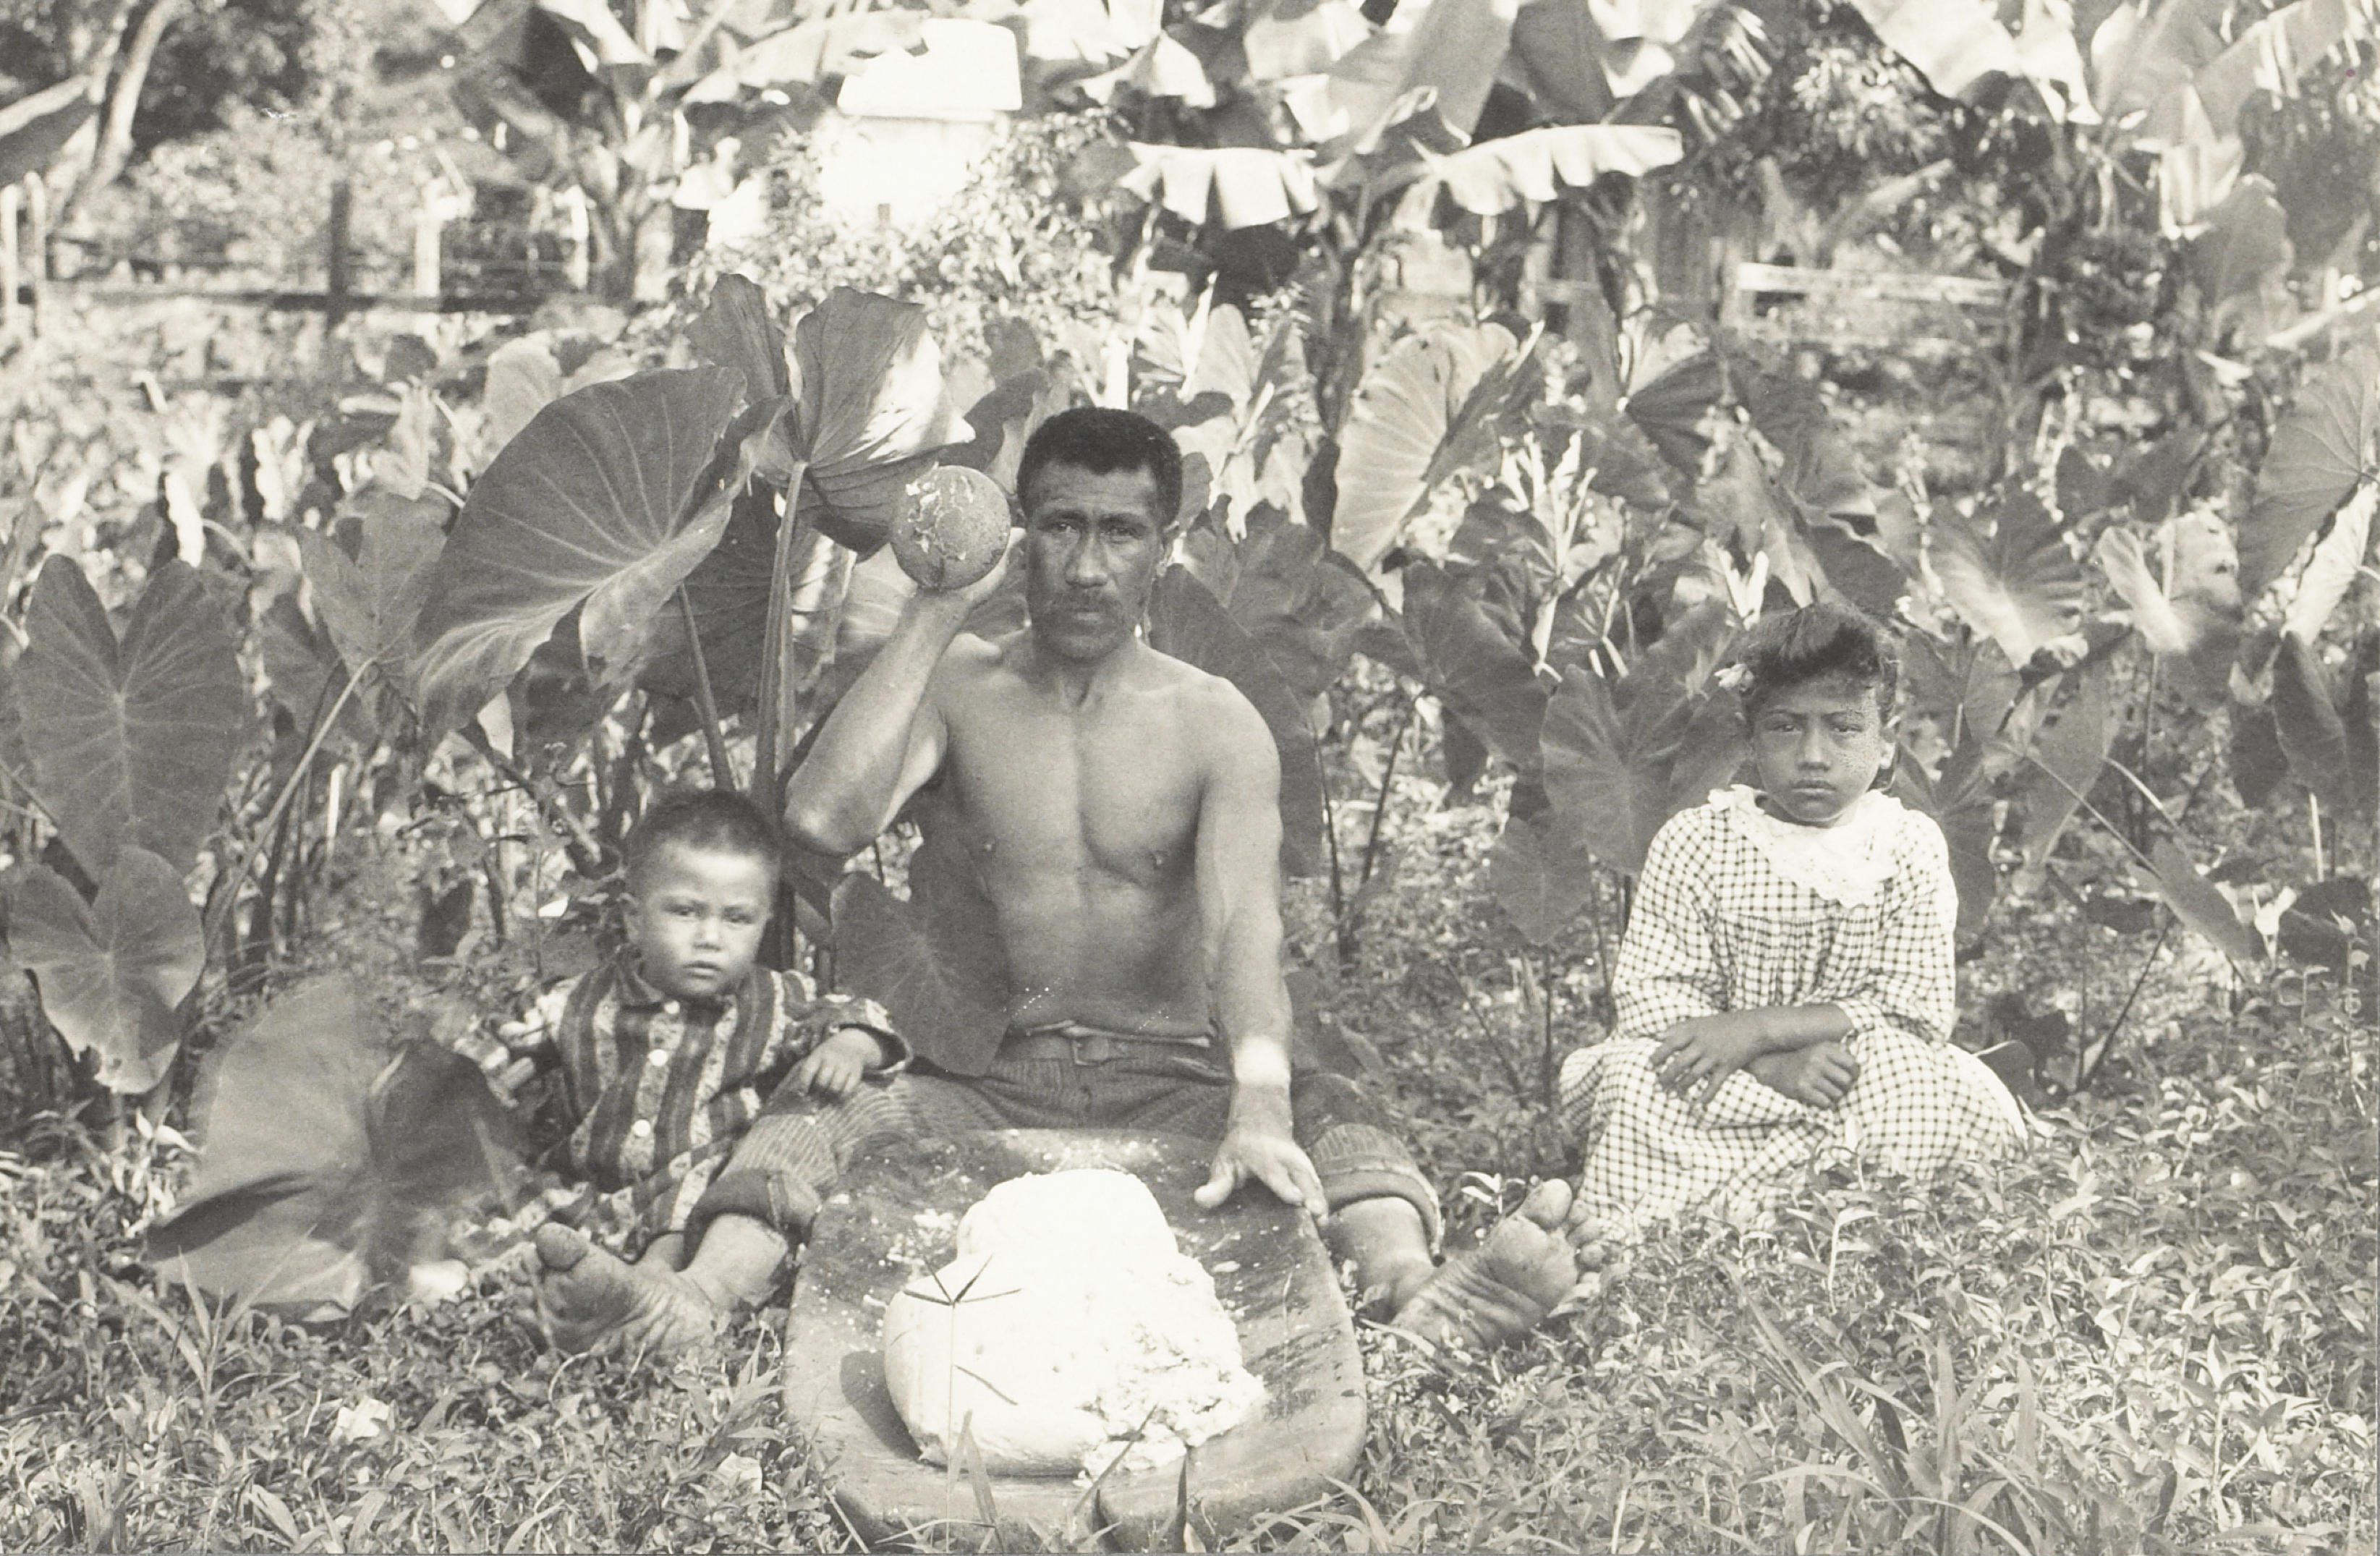 Native Hawaiians. Ever think of them? | Race Relations Project